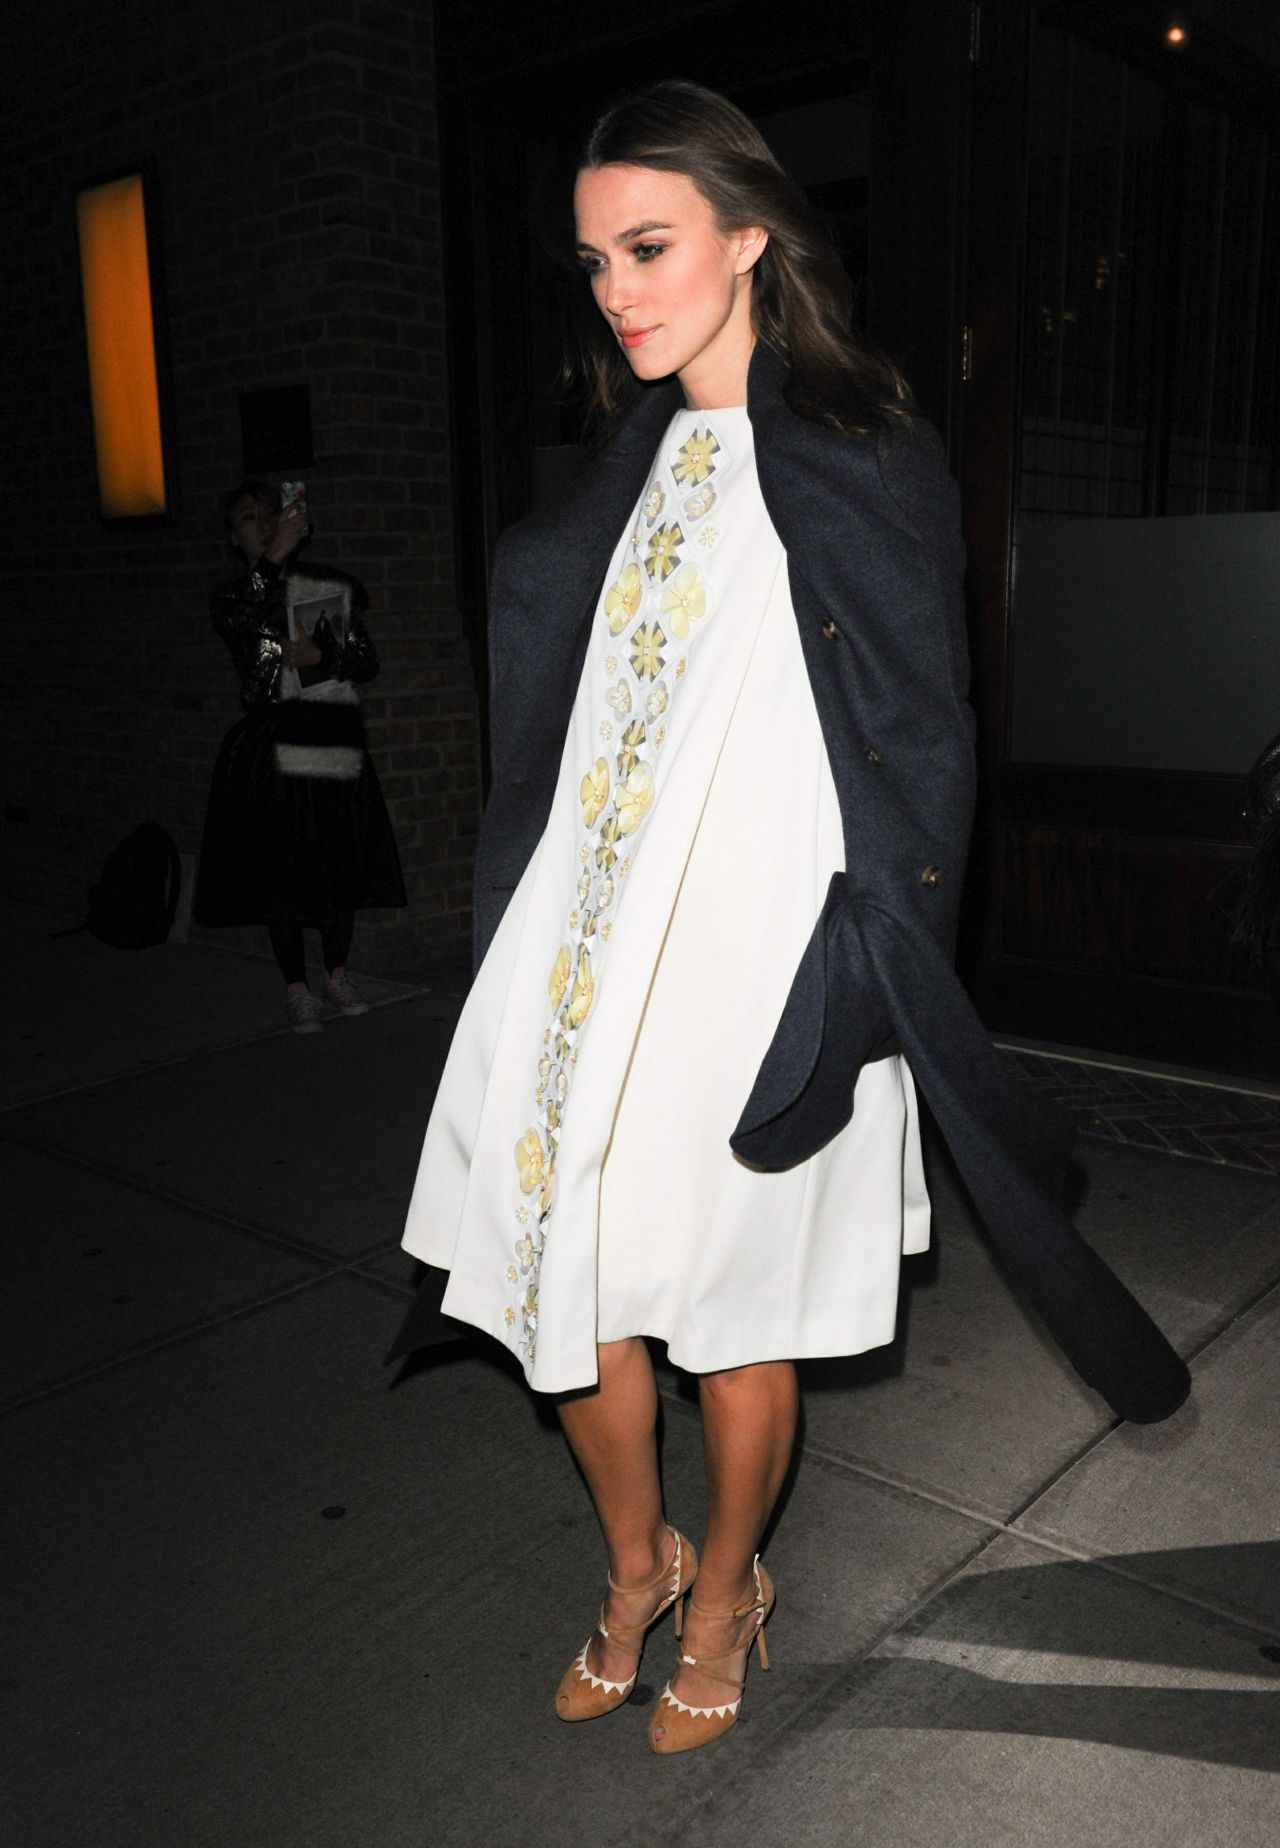 Keira Knightley - Leaves a Downtown Hotel in NYC - November 2014